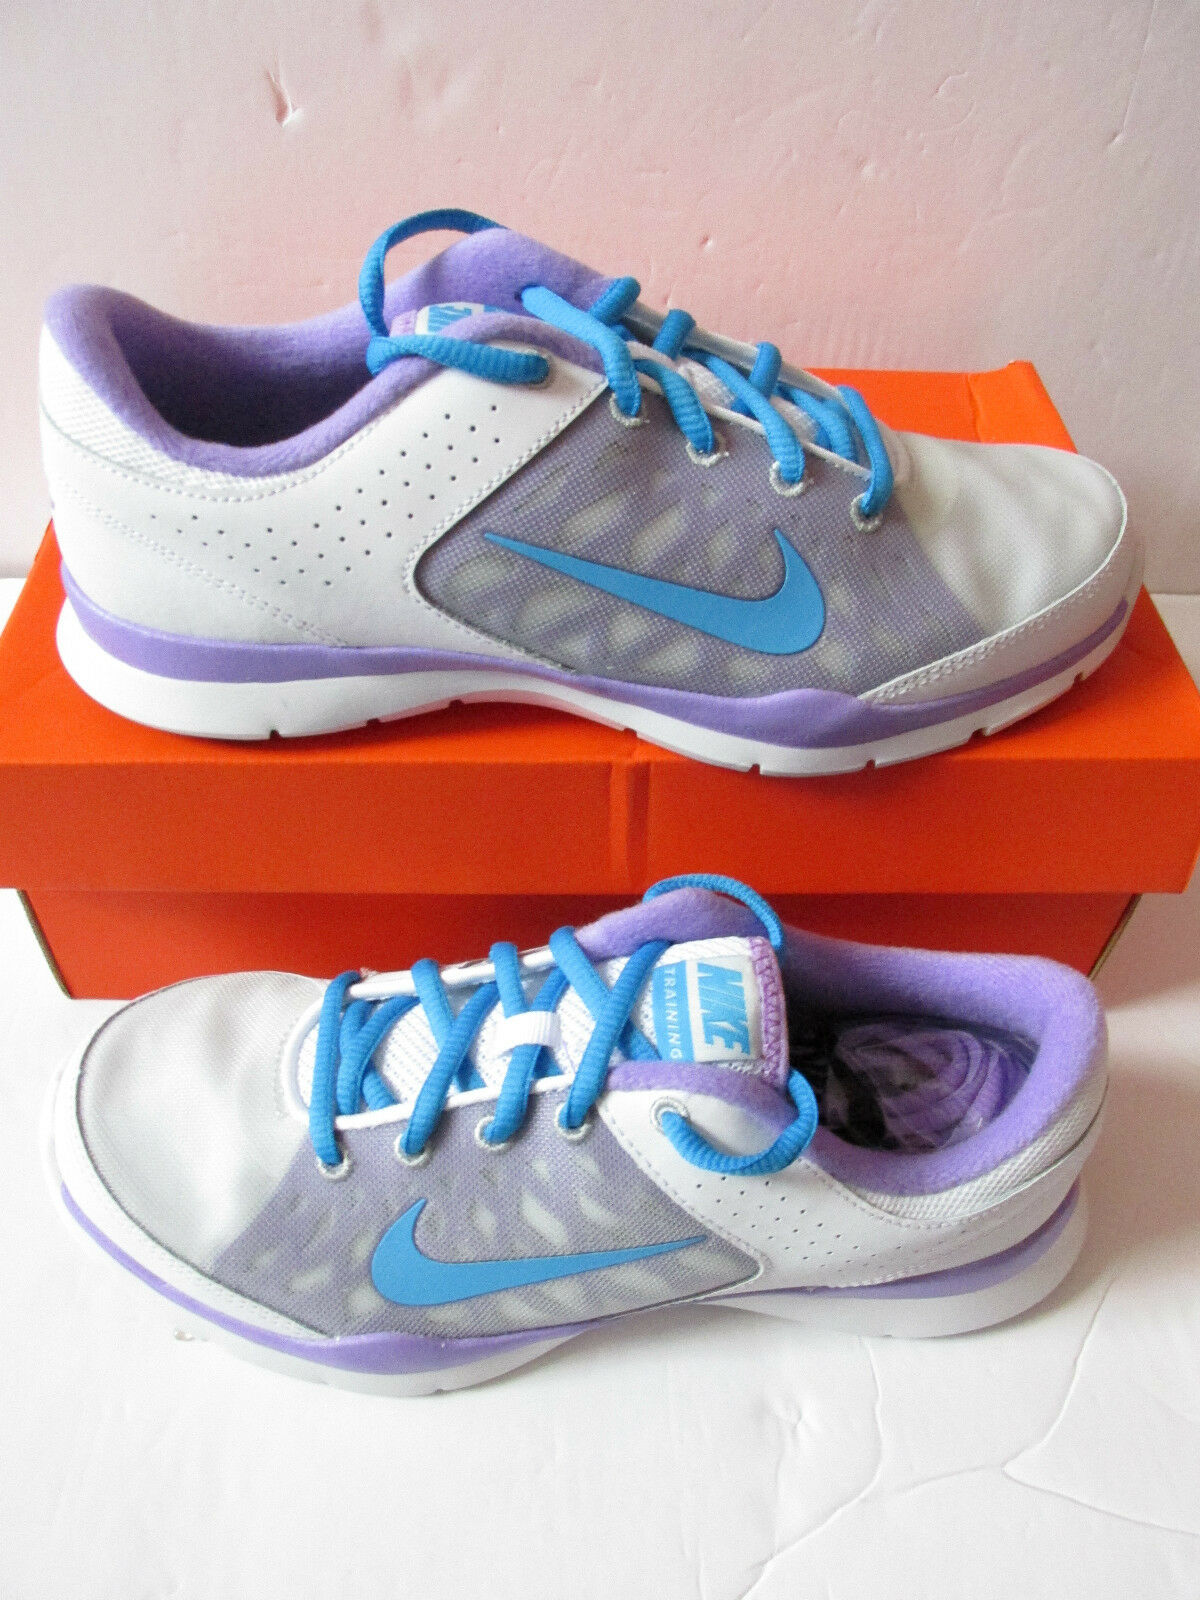 nike womens flex trainer 3 sneakers running trainers 580374 104 sneakers 3 shoes 0522f7